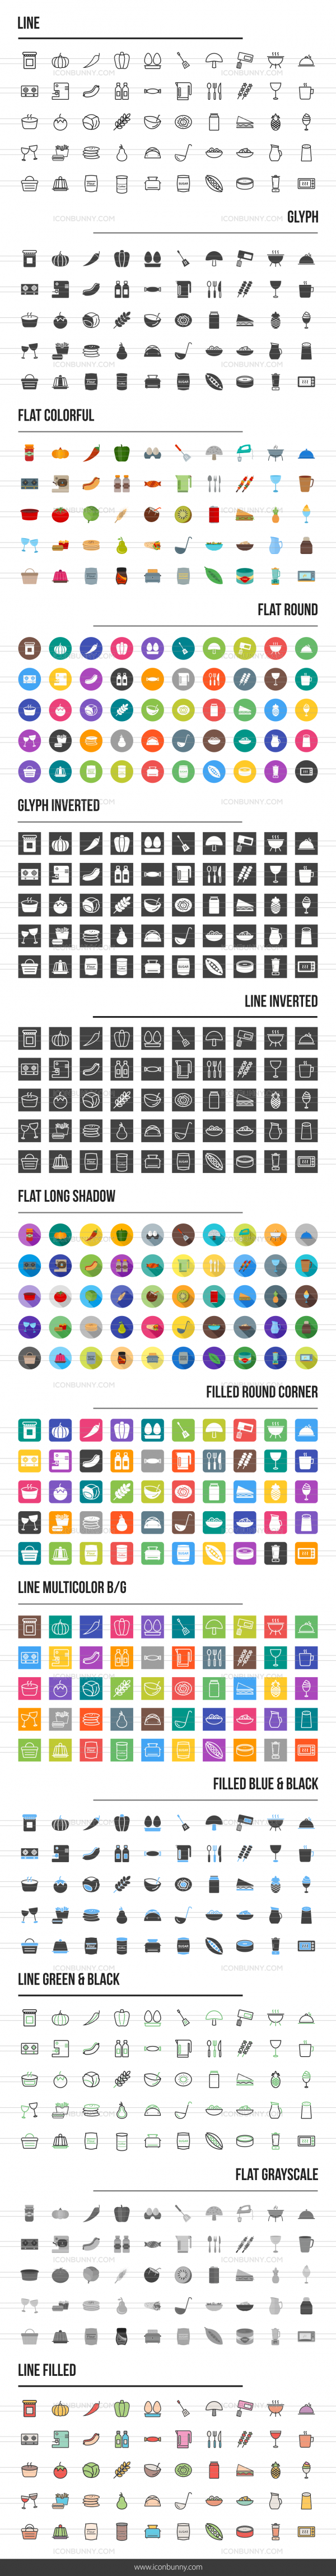 Food Icons Bundle - Preview - IconBunny